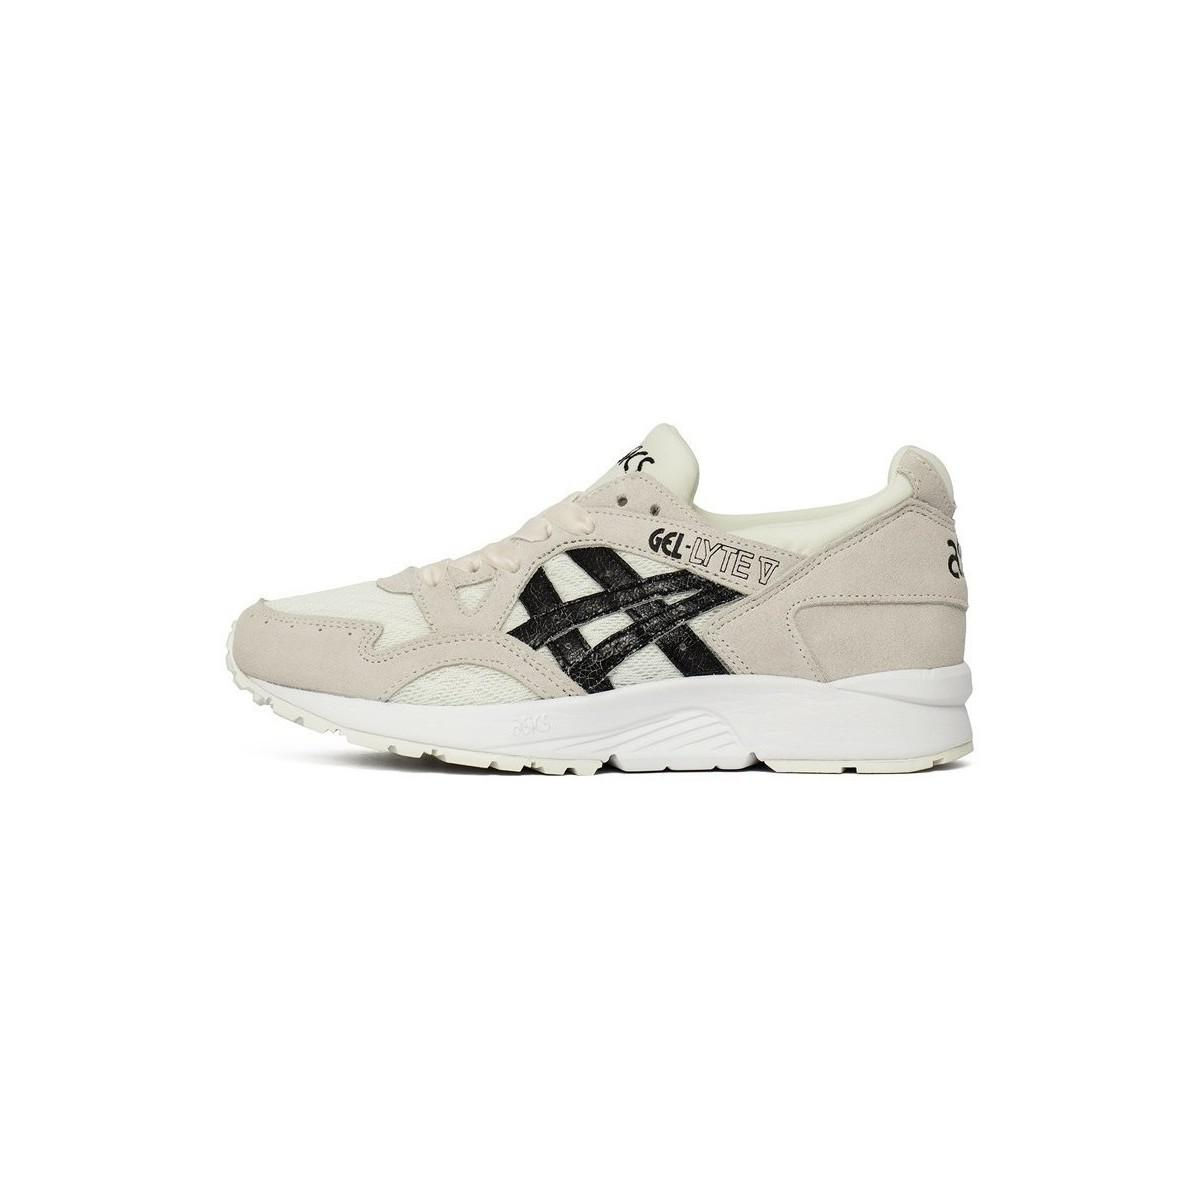 Asics Gellyte V Men s Shoes (trainers) In Grey in Gray for Men - Lyst a9bfa9e29c6d